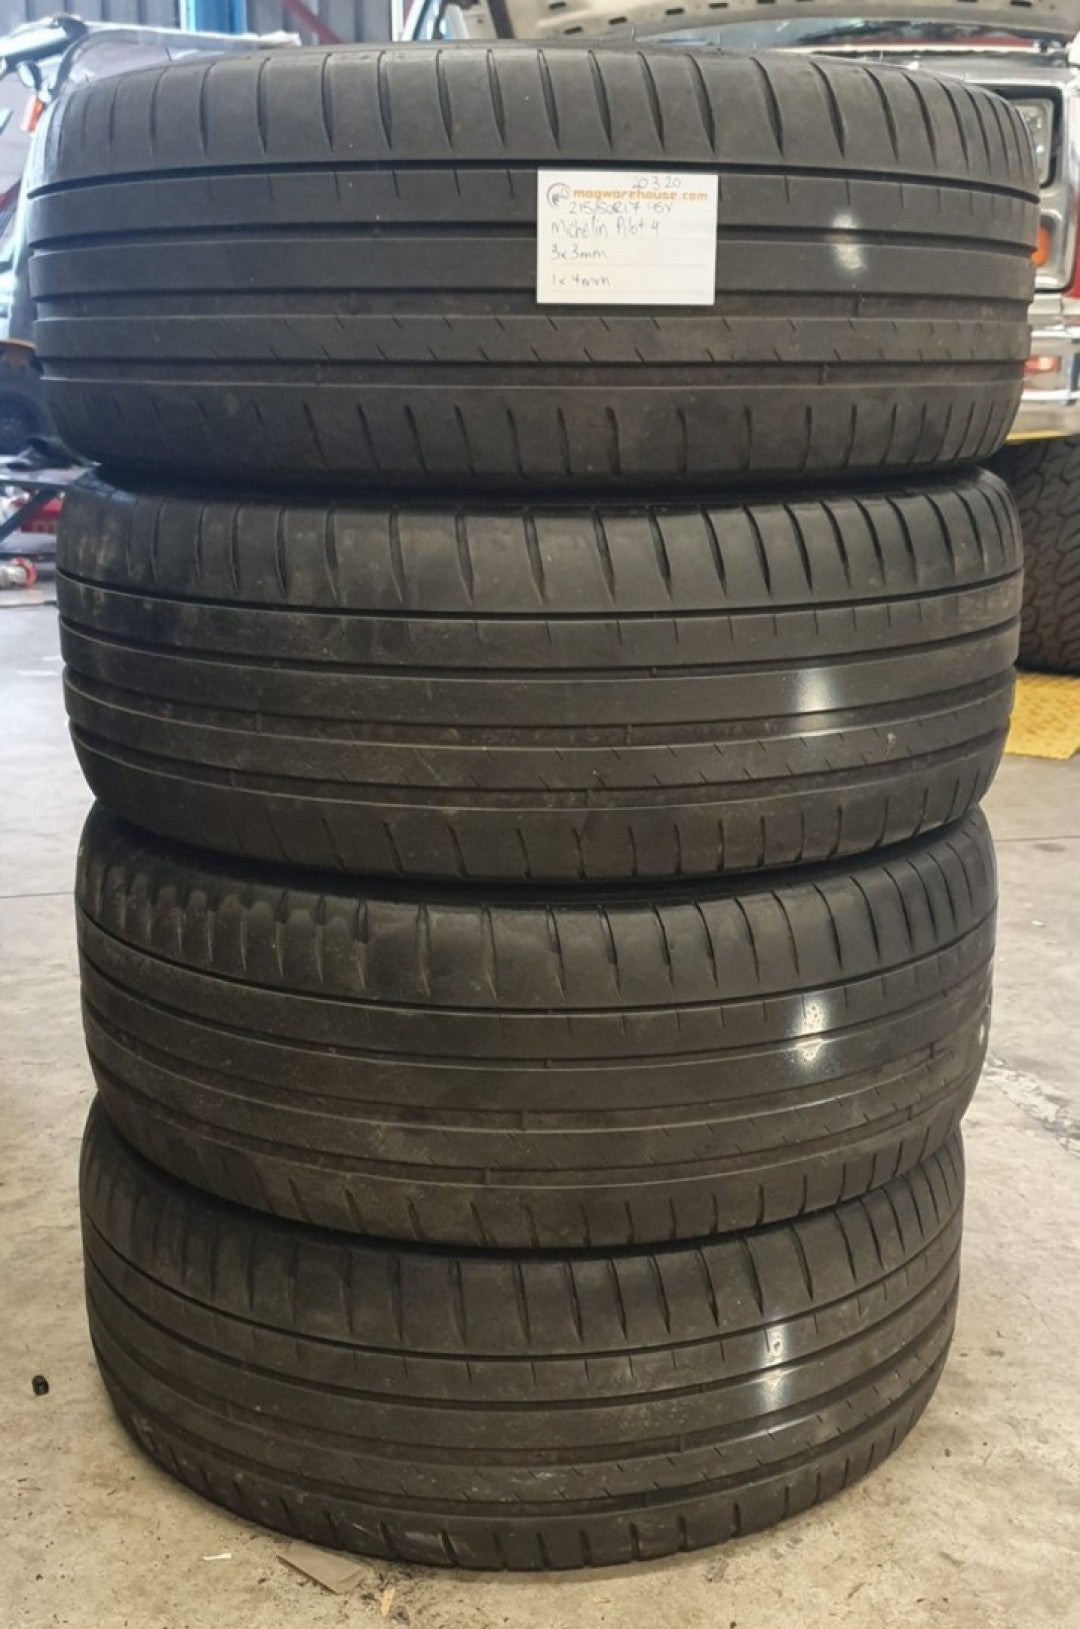 215/50ZR17 95Y Michelin Pilot Sport 4 3x3mm 1x4mm FREE FITTING IN BUYNOW!!!